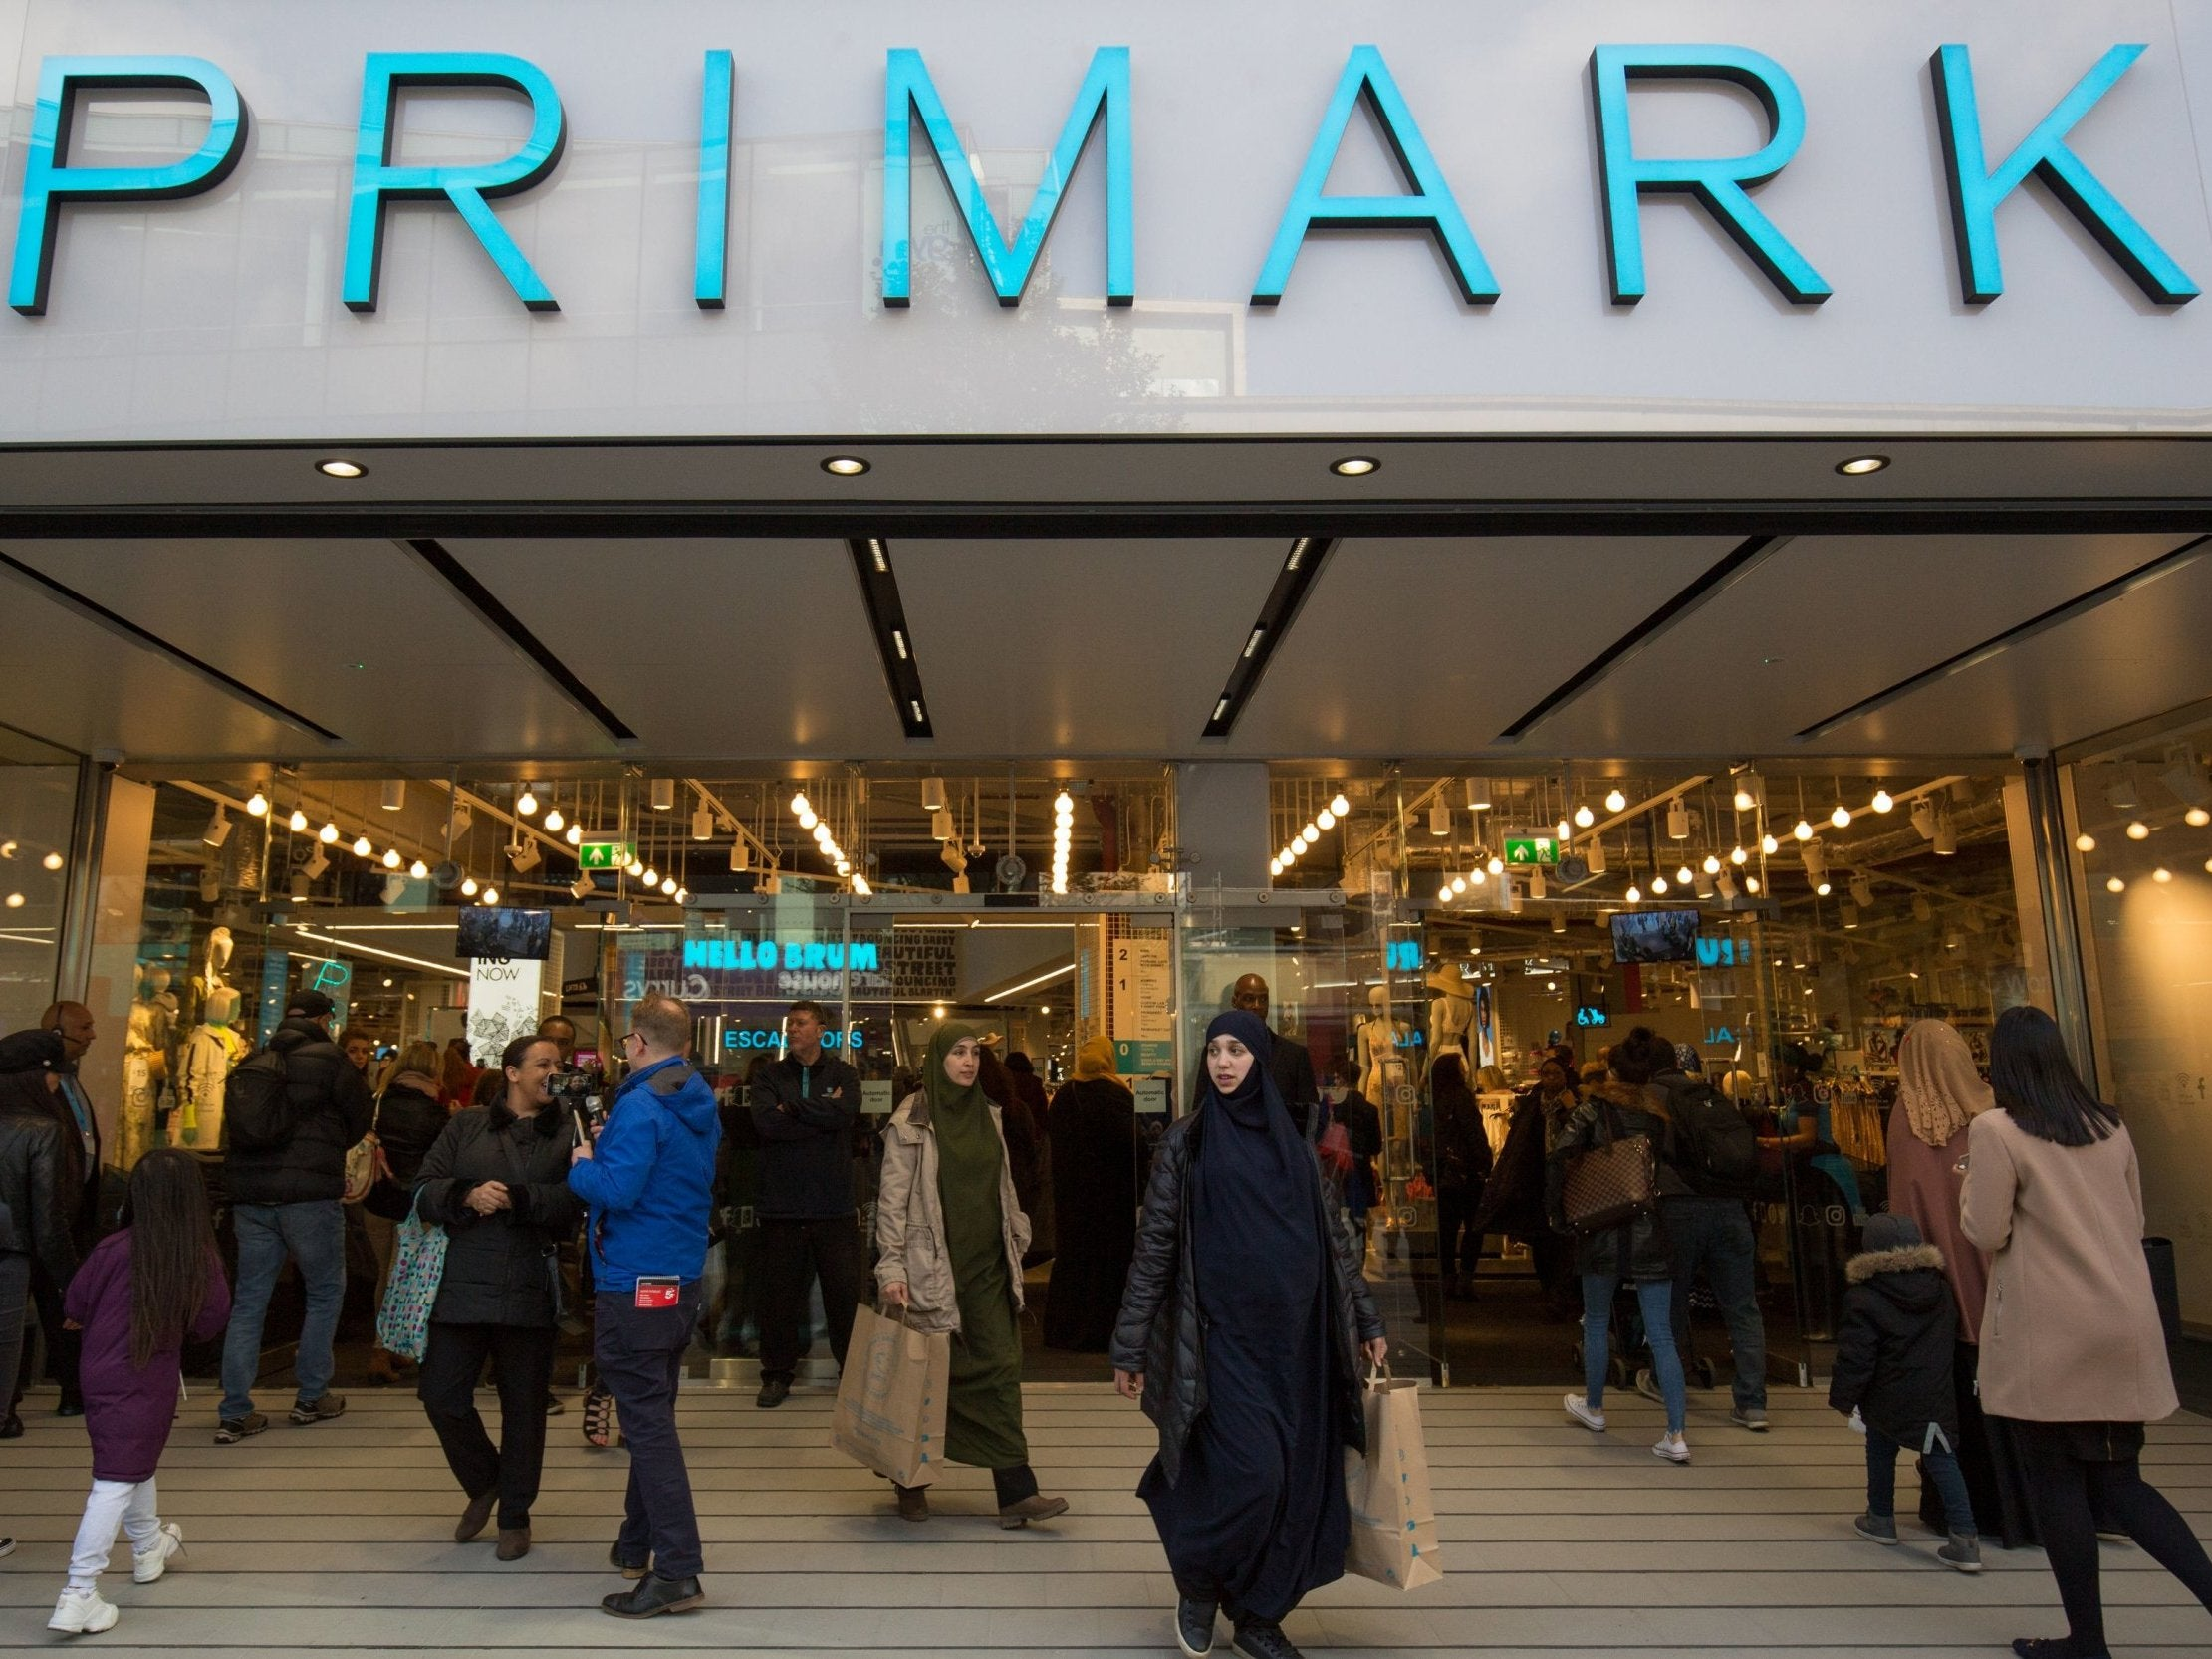 8e0cc6dc94a Primark - latest news, breaking stories and comment - The Independent